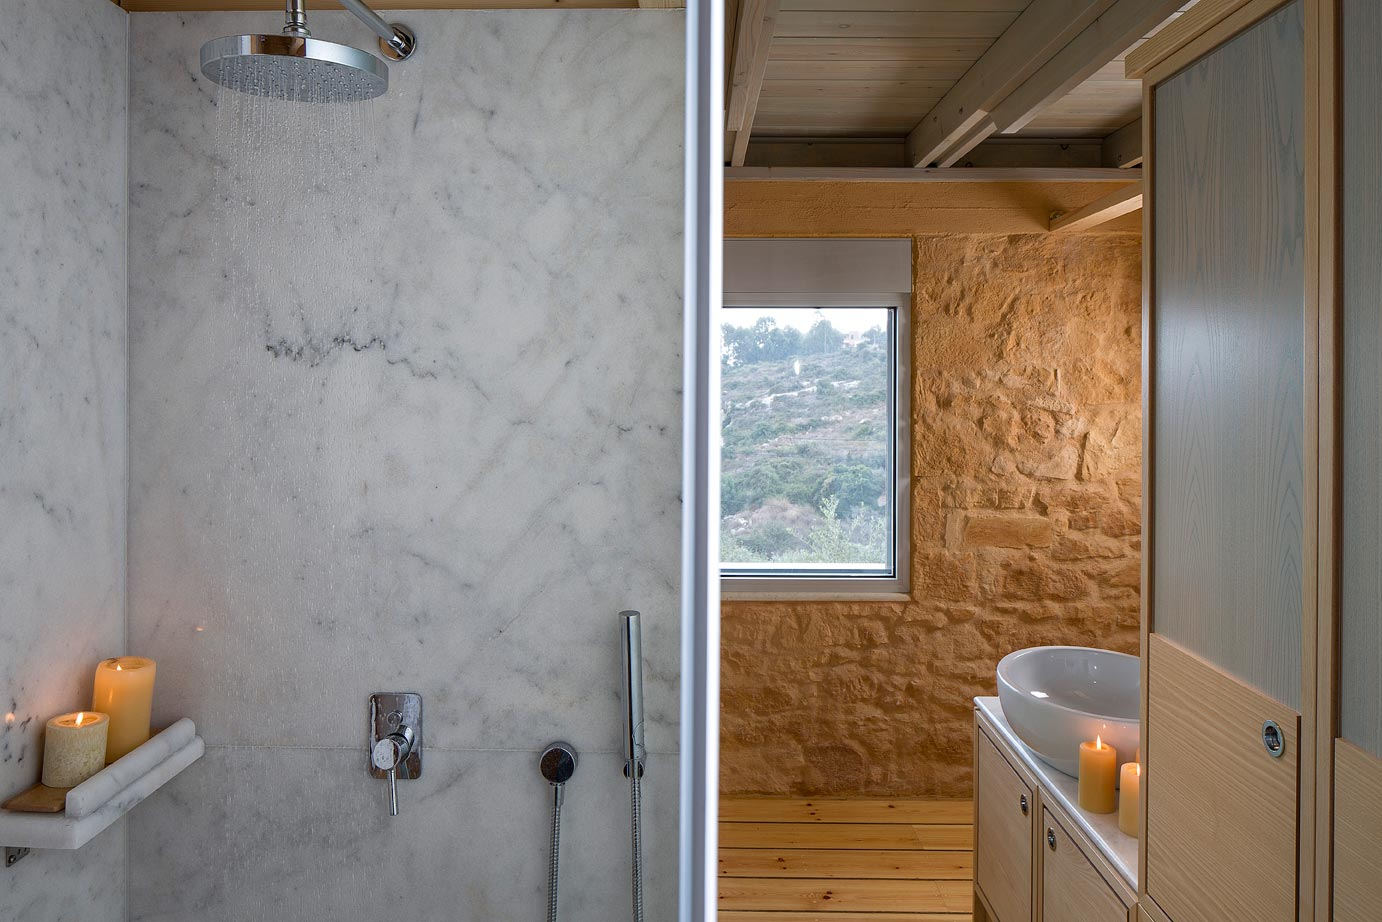 show luxury stone villa akrotiri crete greece stone bathroom - Luxury Stone Showers